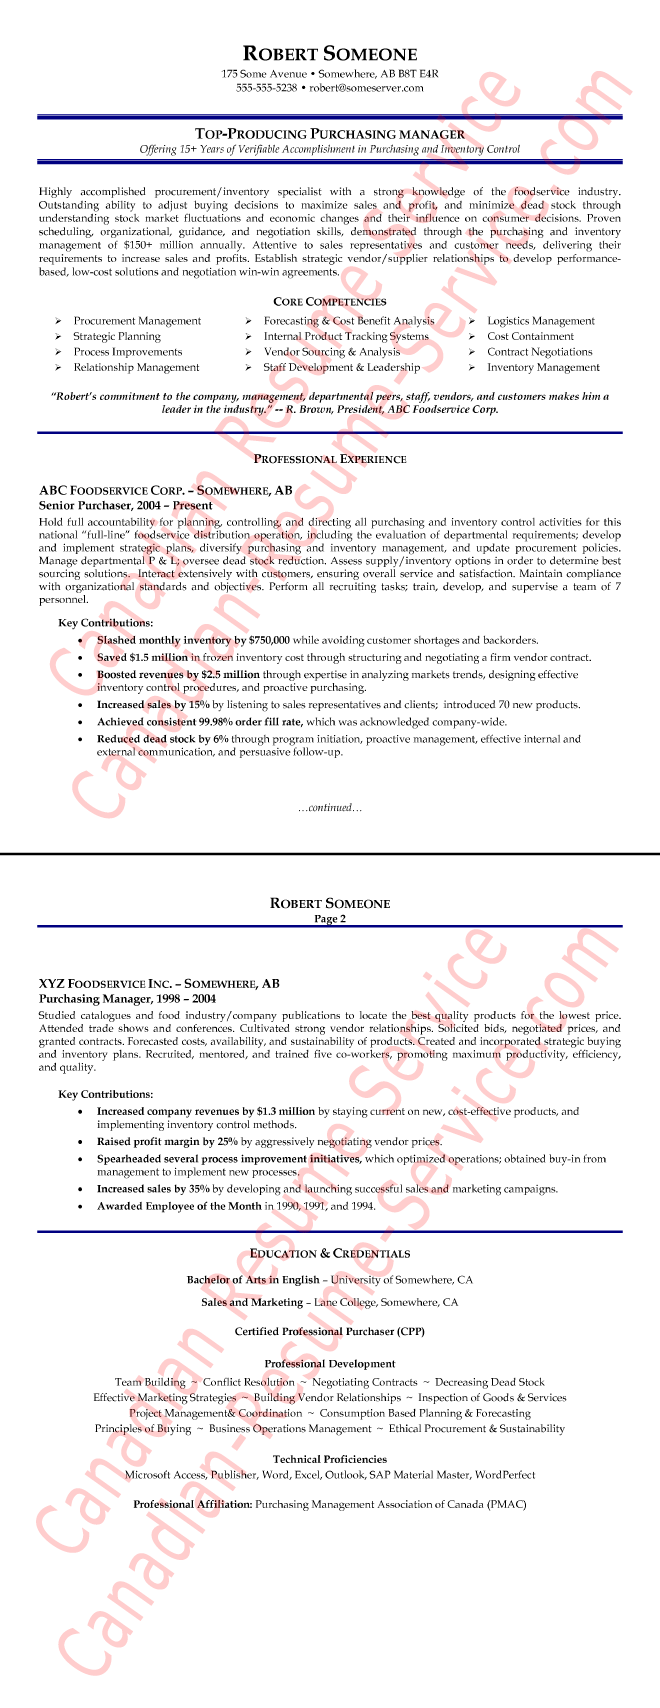 freeteacher resume and cover letter sample essay for my perfect